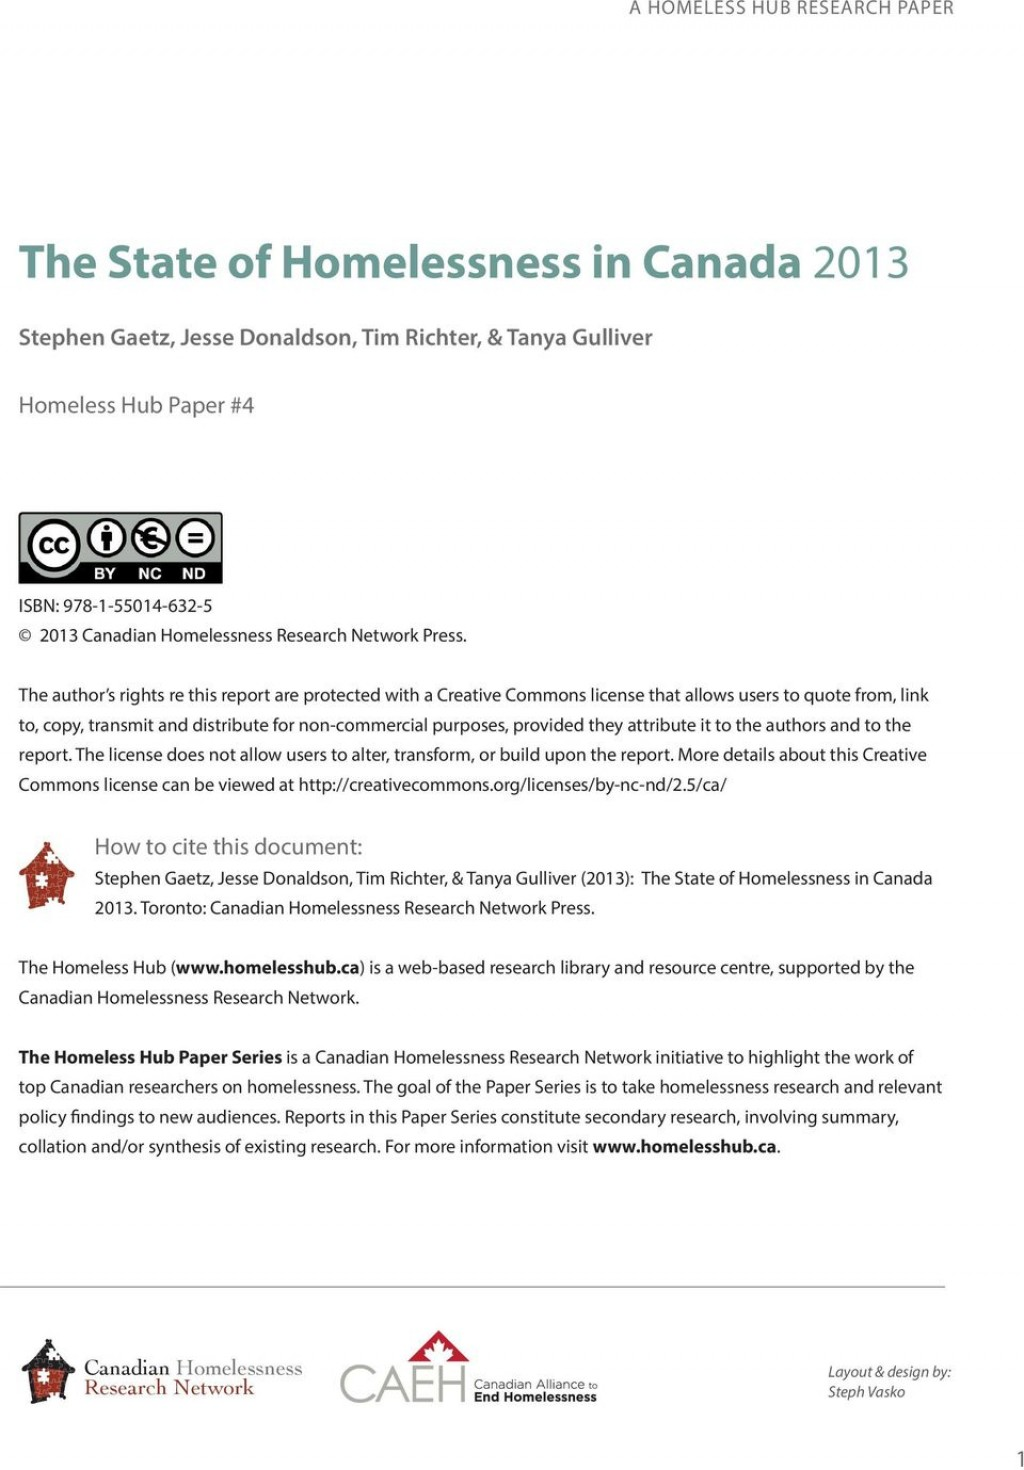 003 Page 2 Research Paper On Singular Homelessness Article In The United States Sample Large